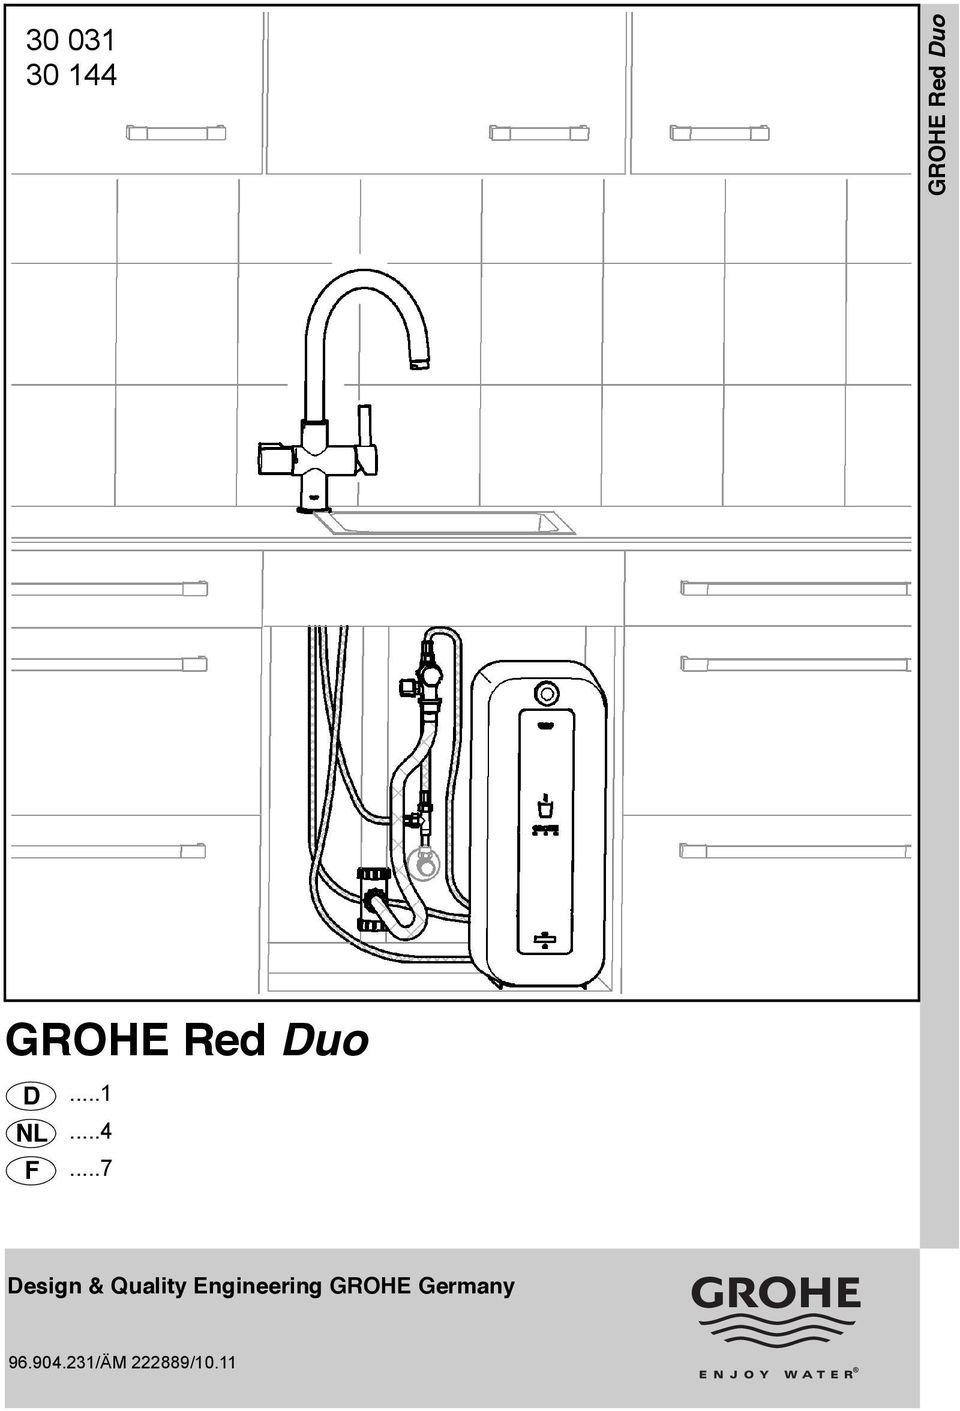 GROHE Red Duo. Design & Quality Engineering GROHE Germany ...